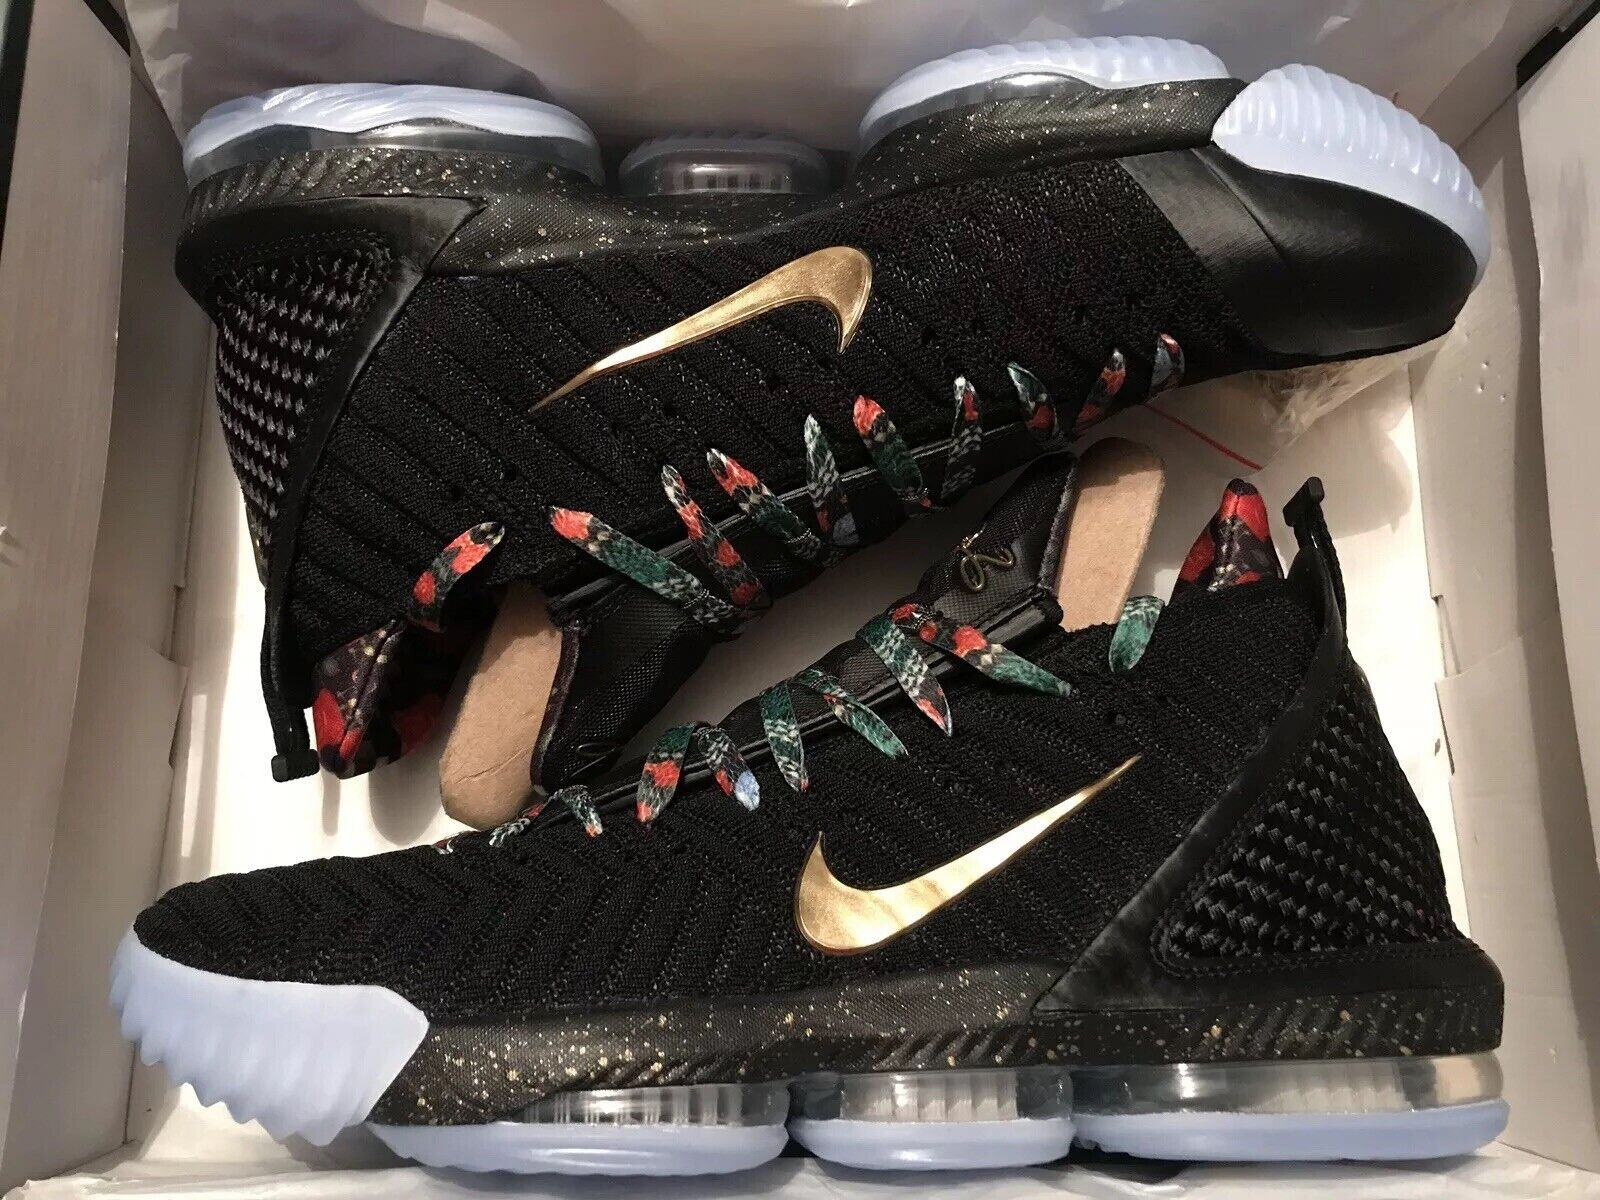 Nike Lebron XVI 16 Watch The Throne WTT CI1518-001 Size 13 DS Limited Rare